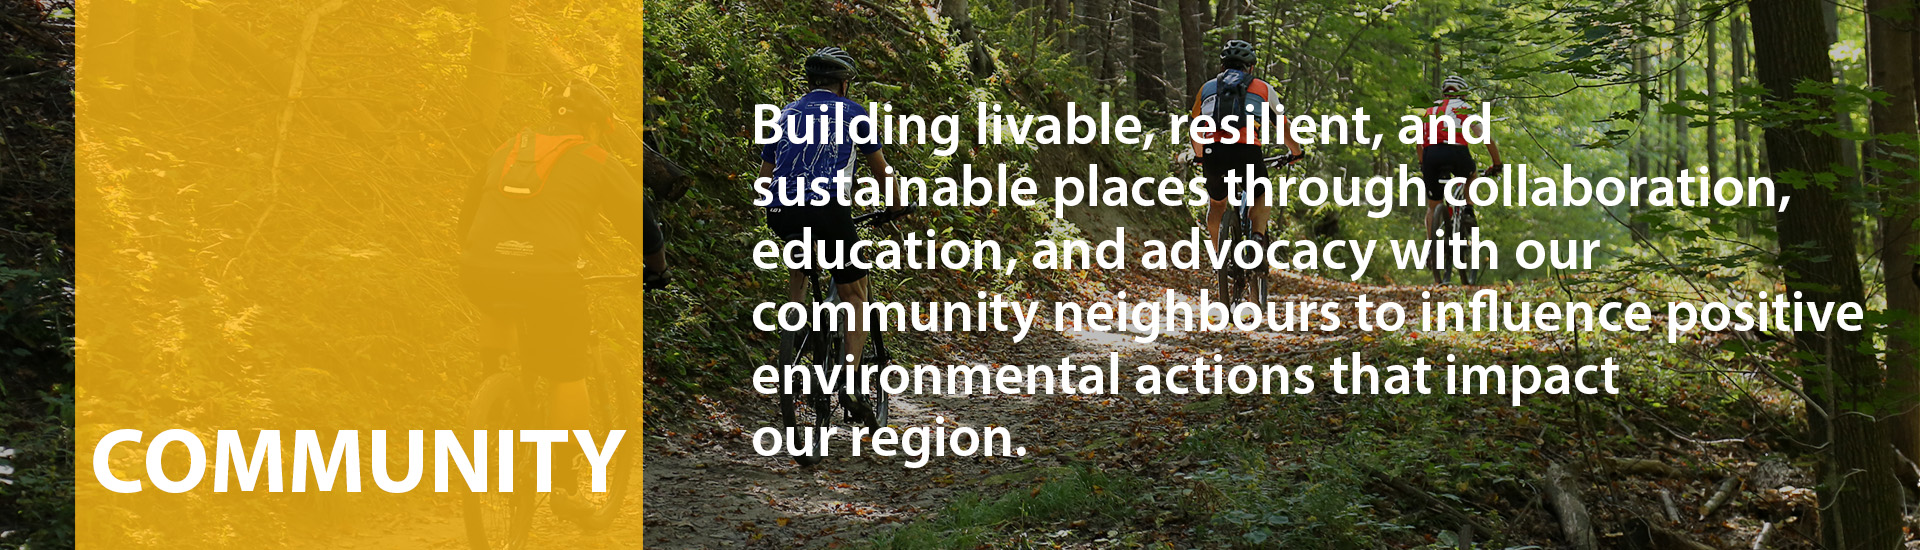 Building livable, resilient, and sustainable places through collaboration, education, and advocacy with our community neighbors to influence positive environmental actions